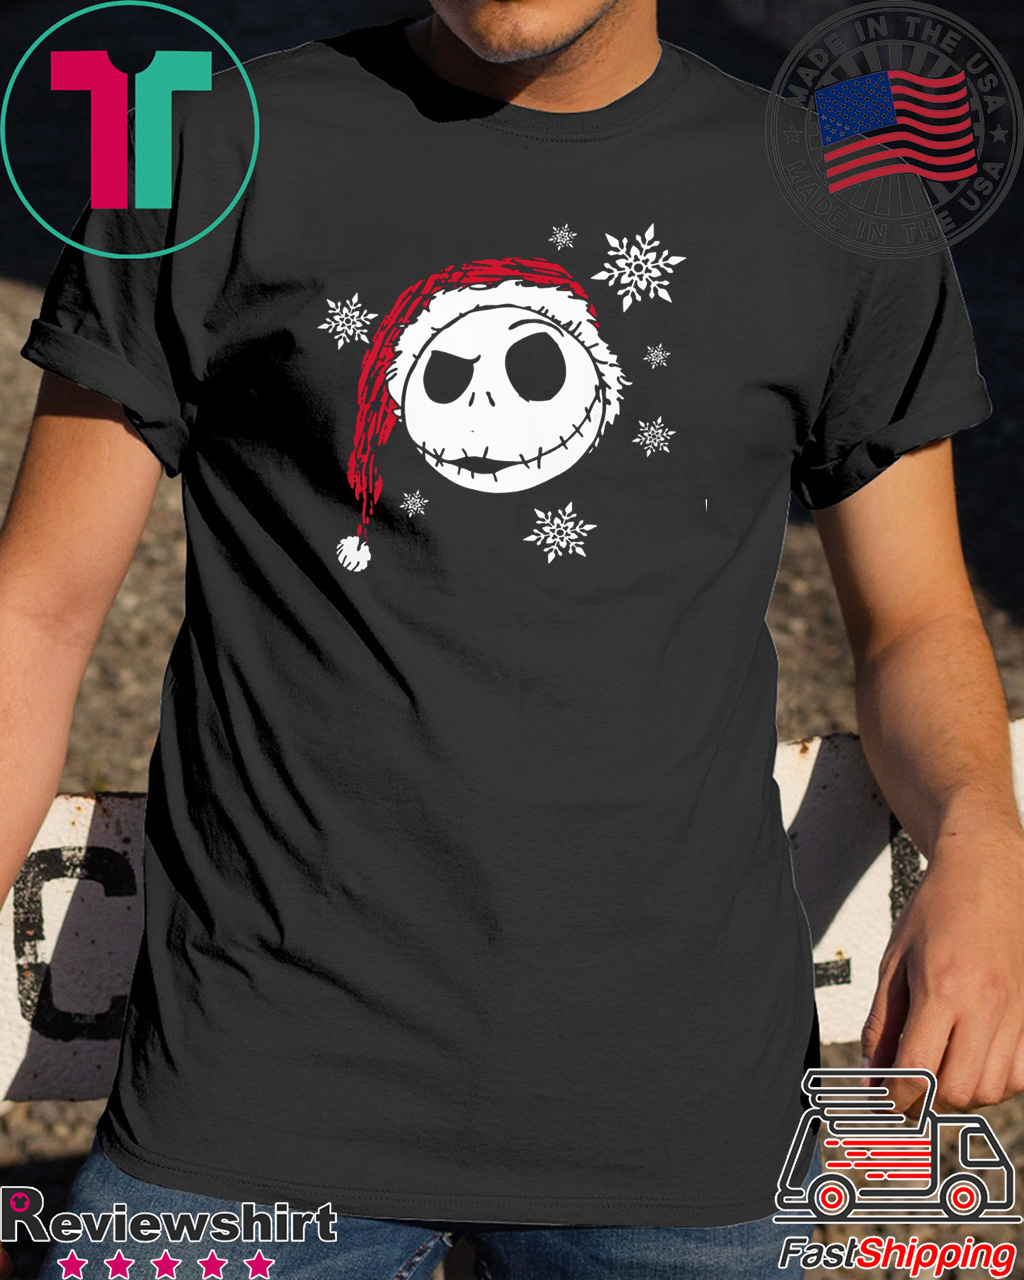 Cool Nightmare Before Christmas Gifts: Nightmare Before Christmas Snowflake Tee Shirt